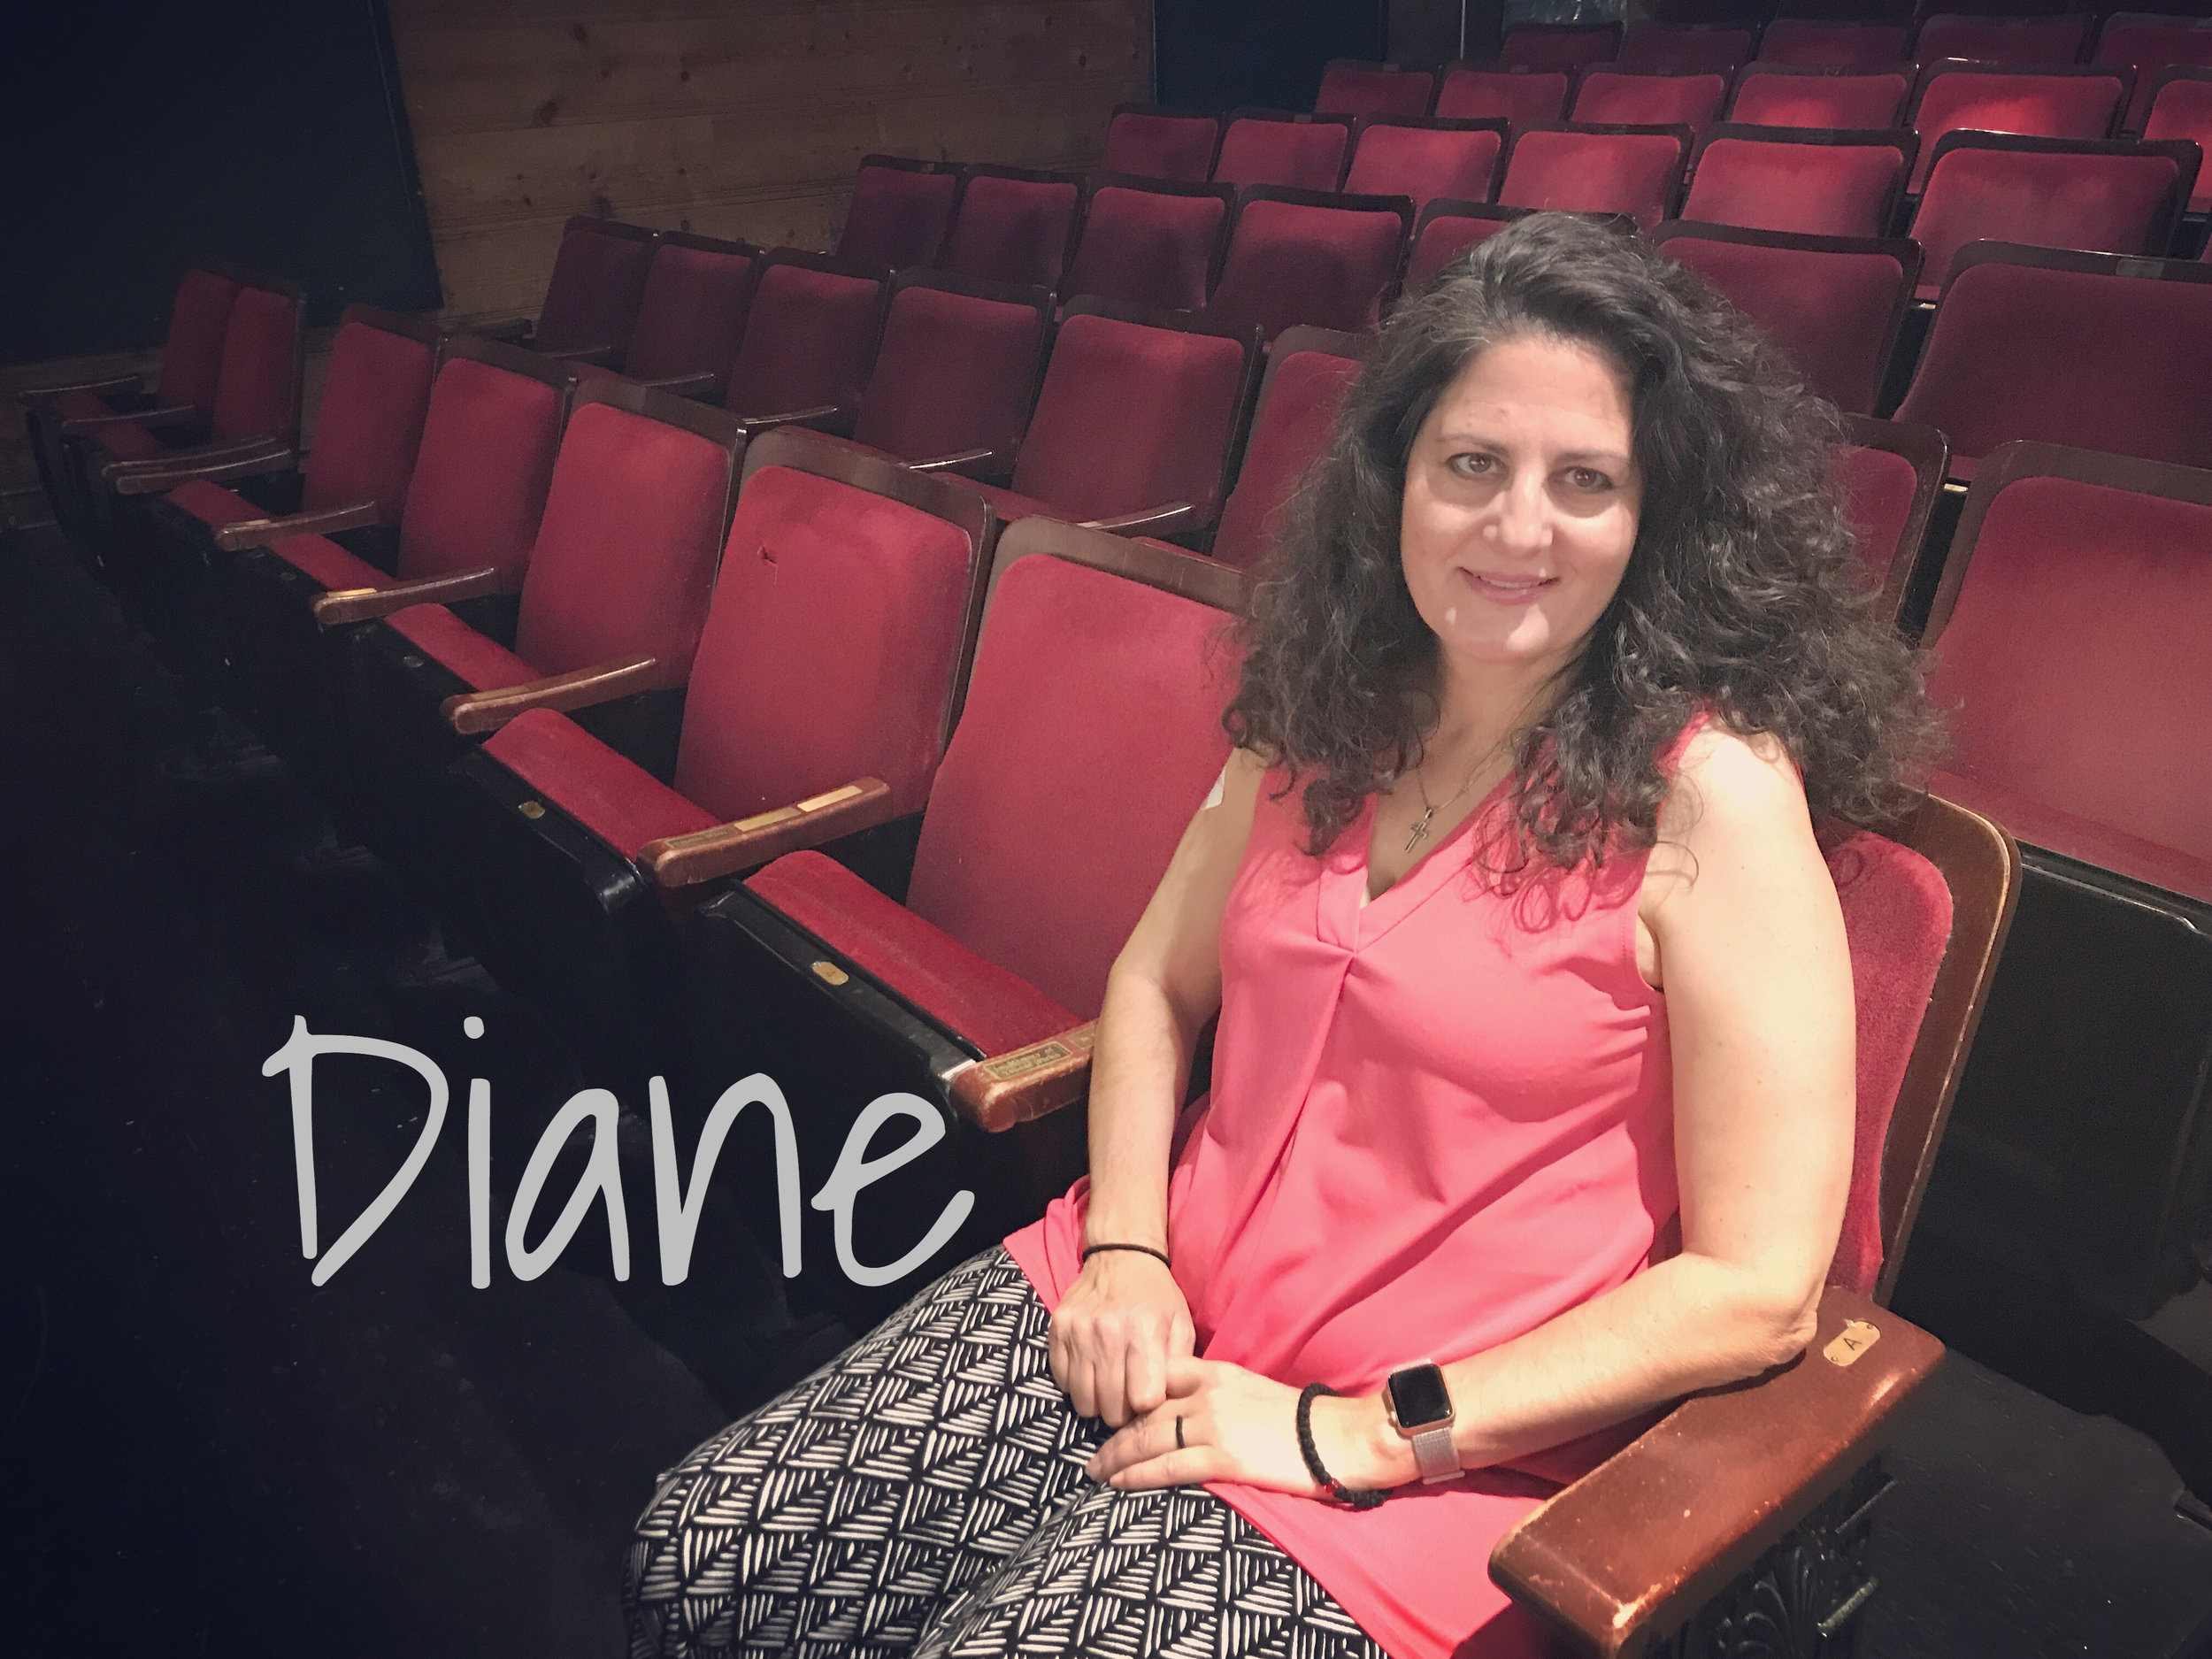 Diane - READ WHAT DIANE HAS TO SAY ABOUT THE REVOLUTIONISTS!